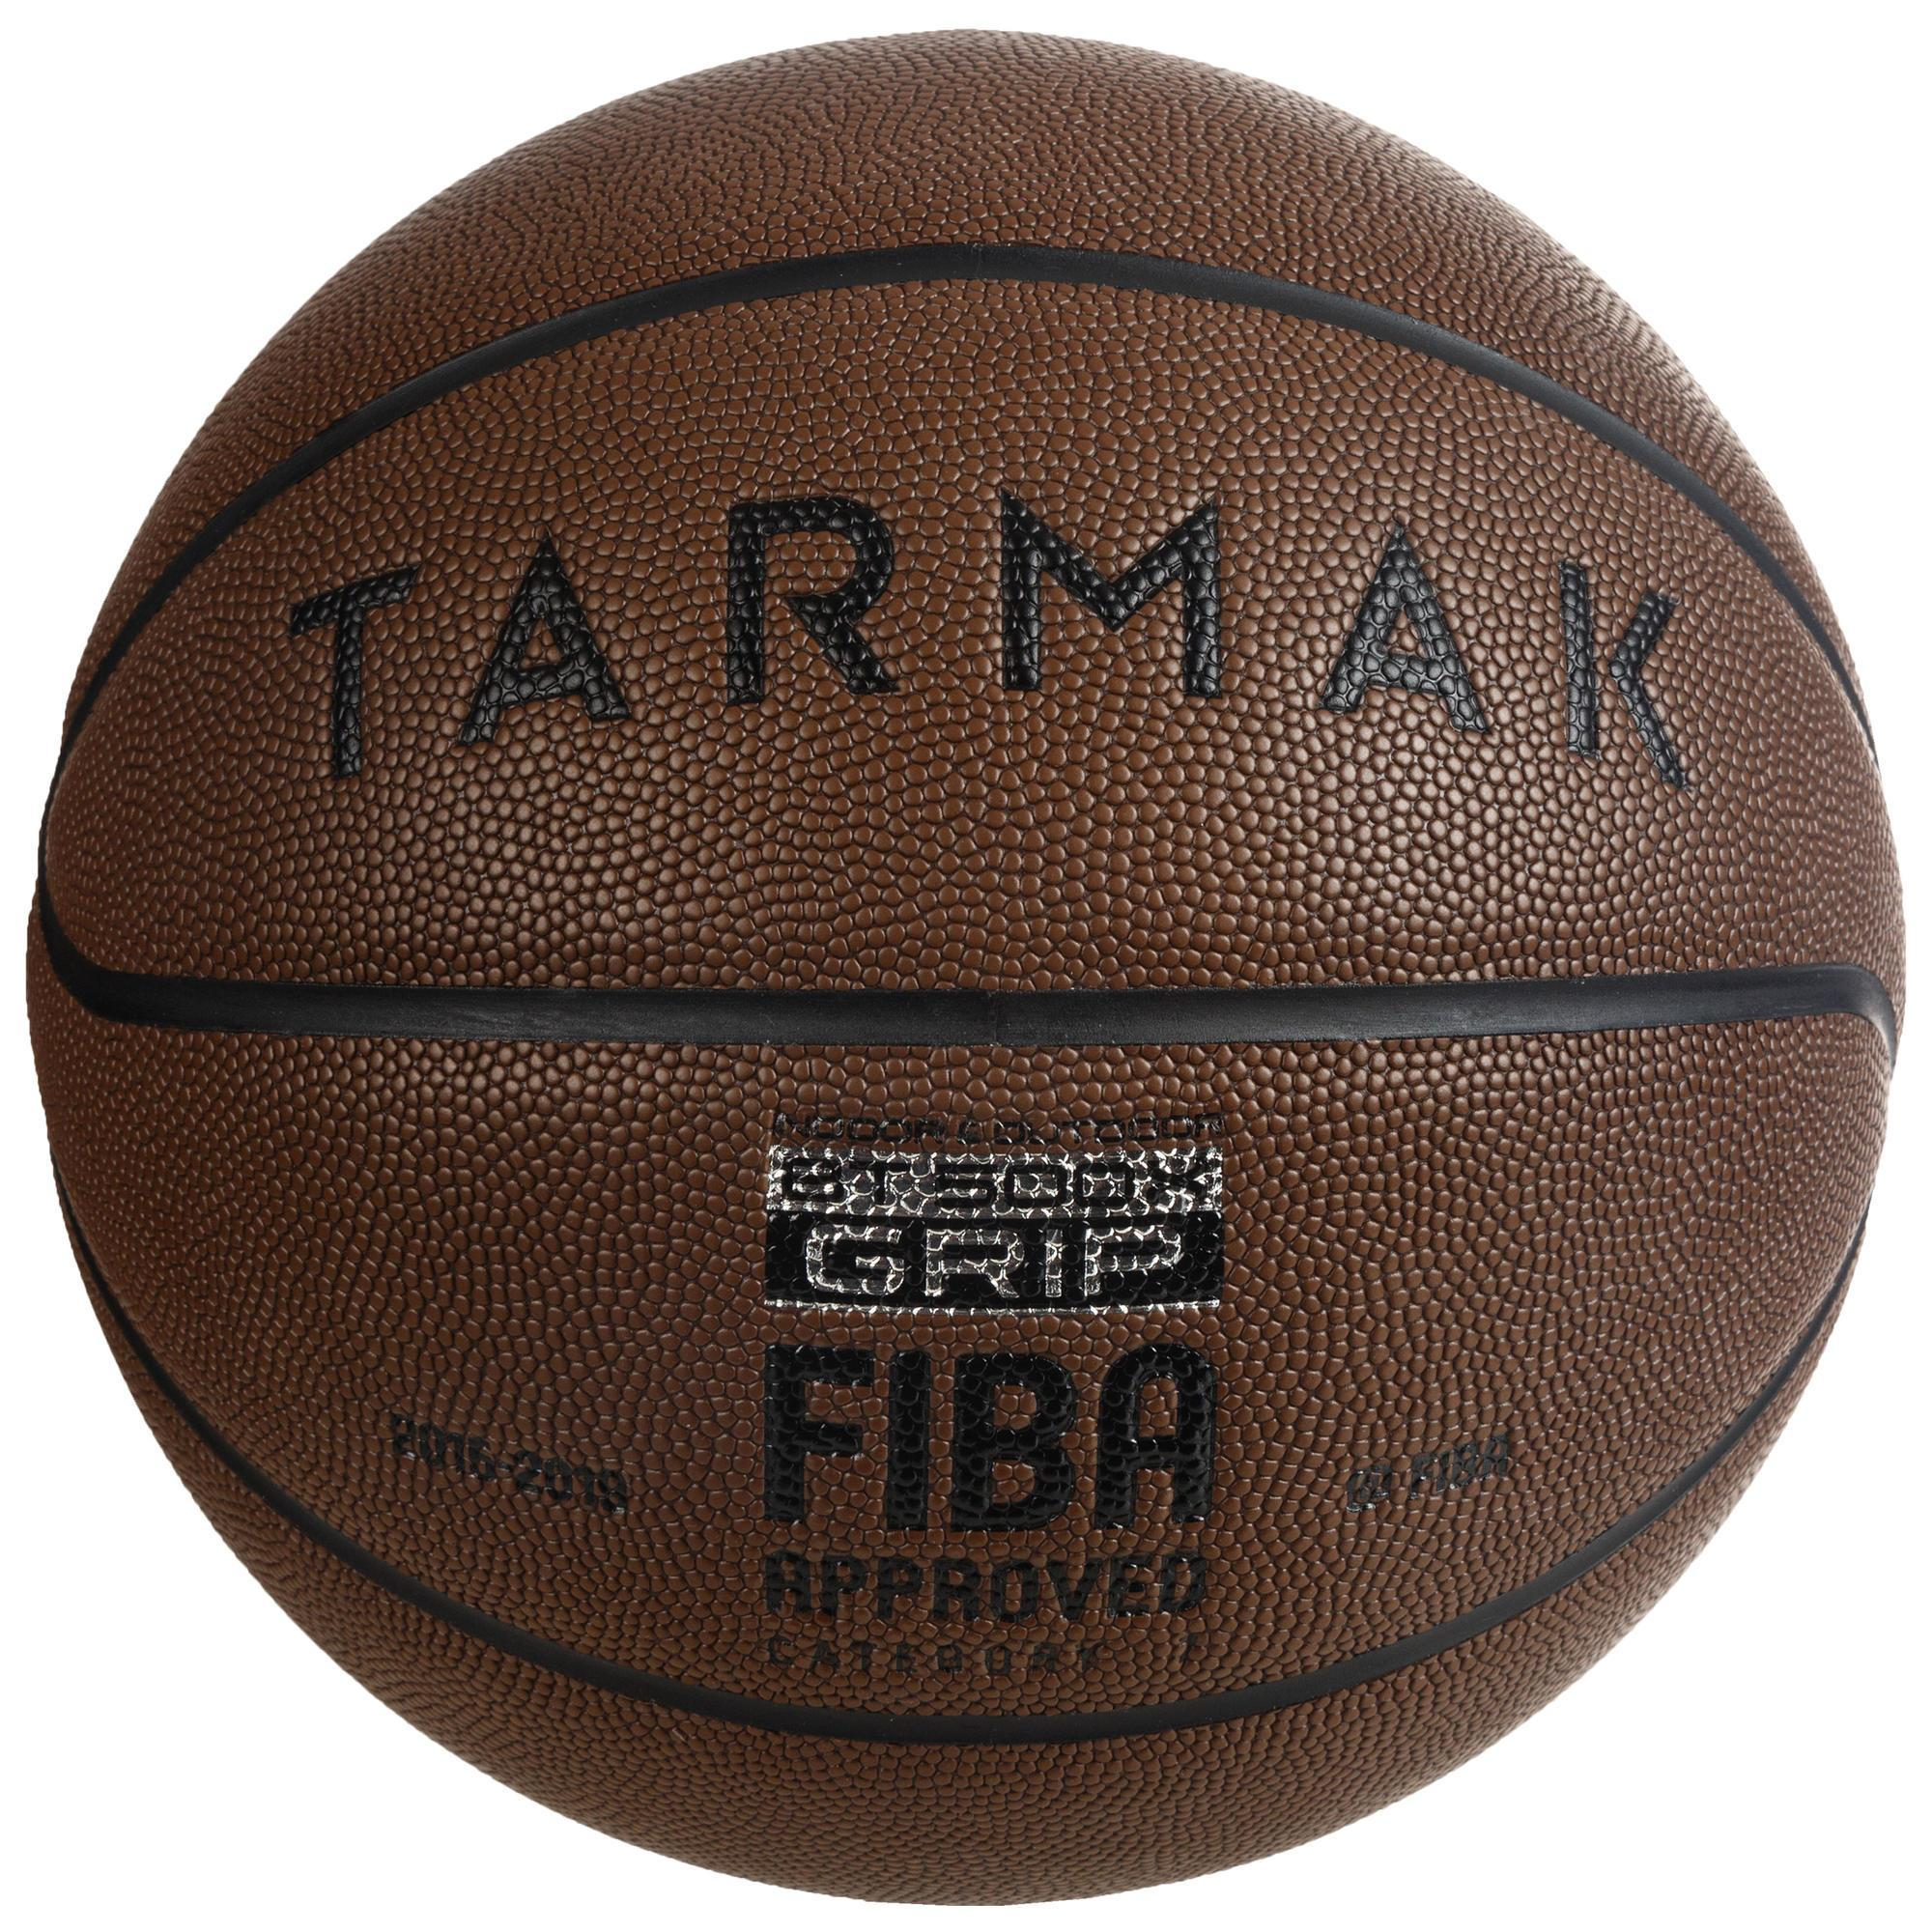 Ballon Gym Quelle Taille Choisir ballon de basket adulte bt500 grip taille 7 - marron excellent toucher de  balle